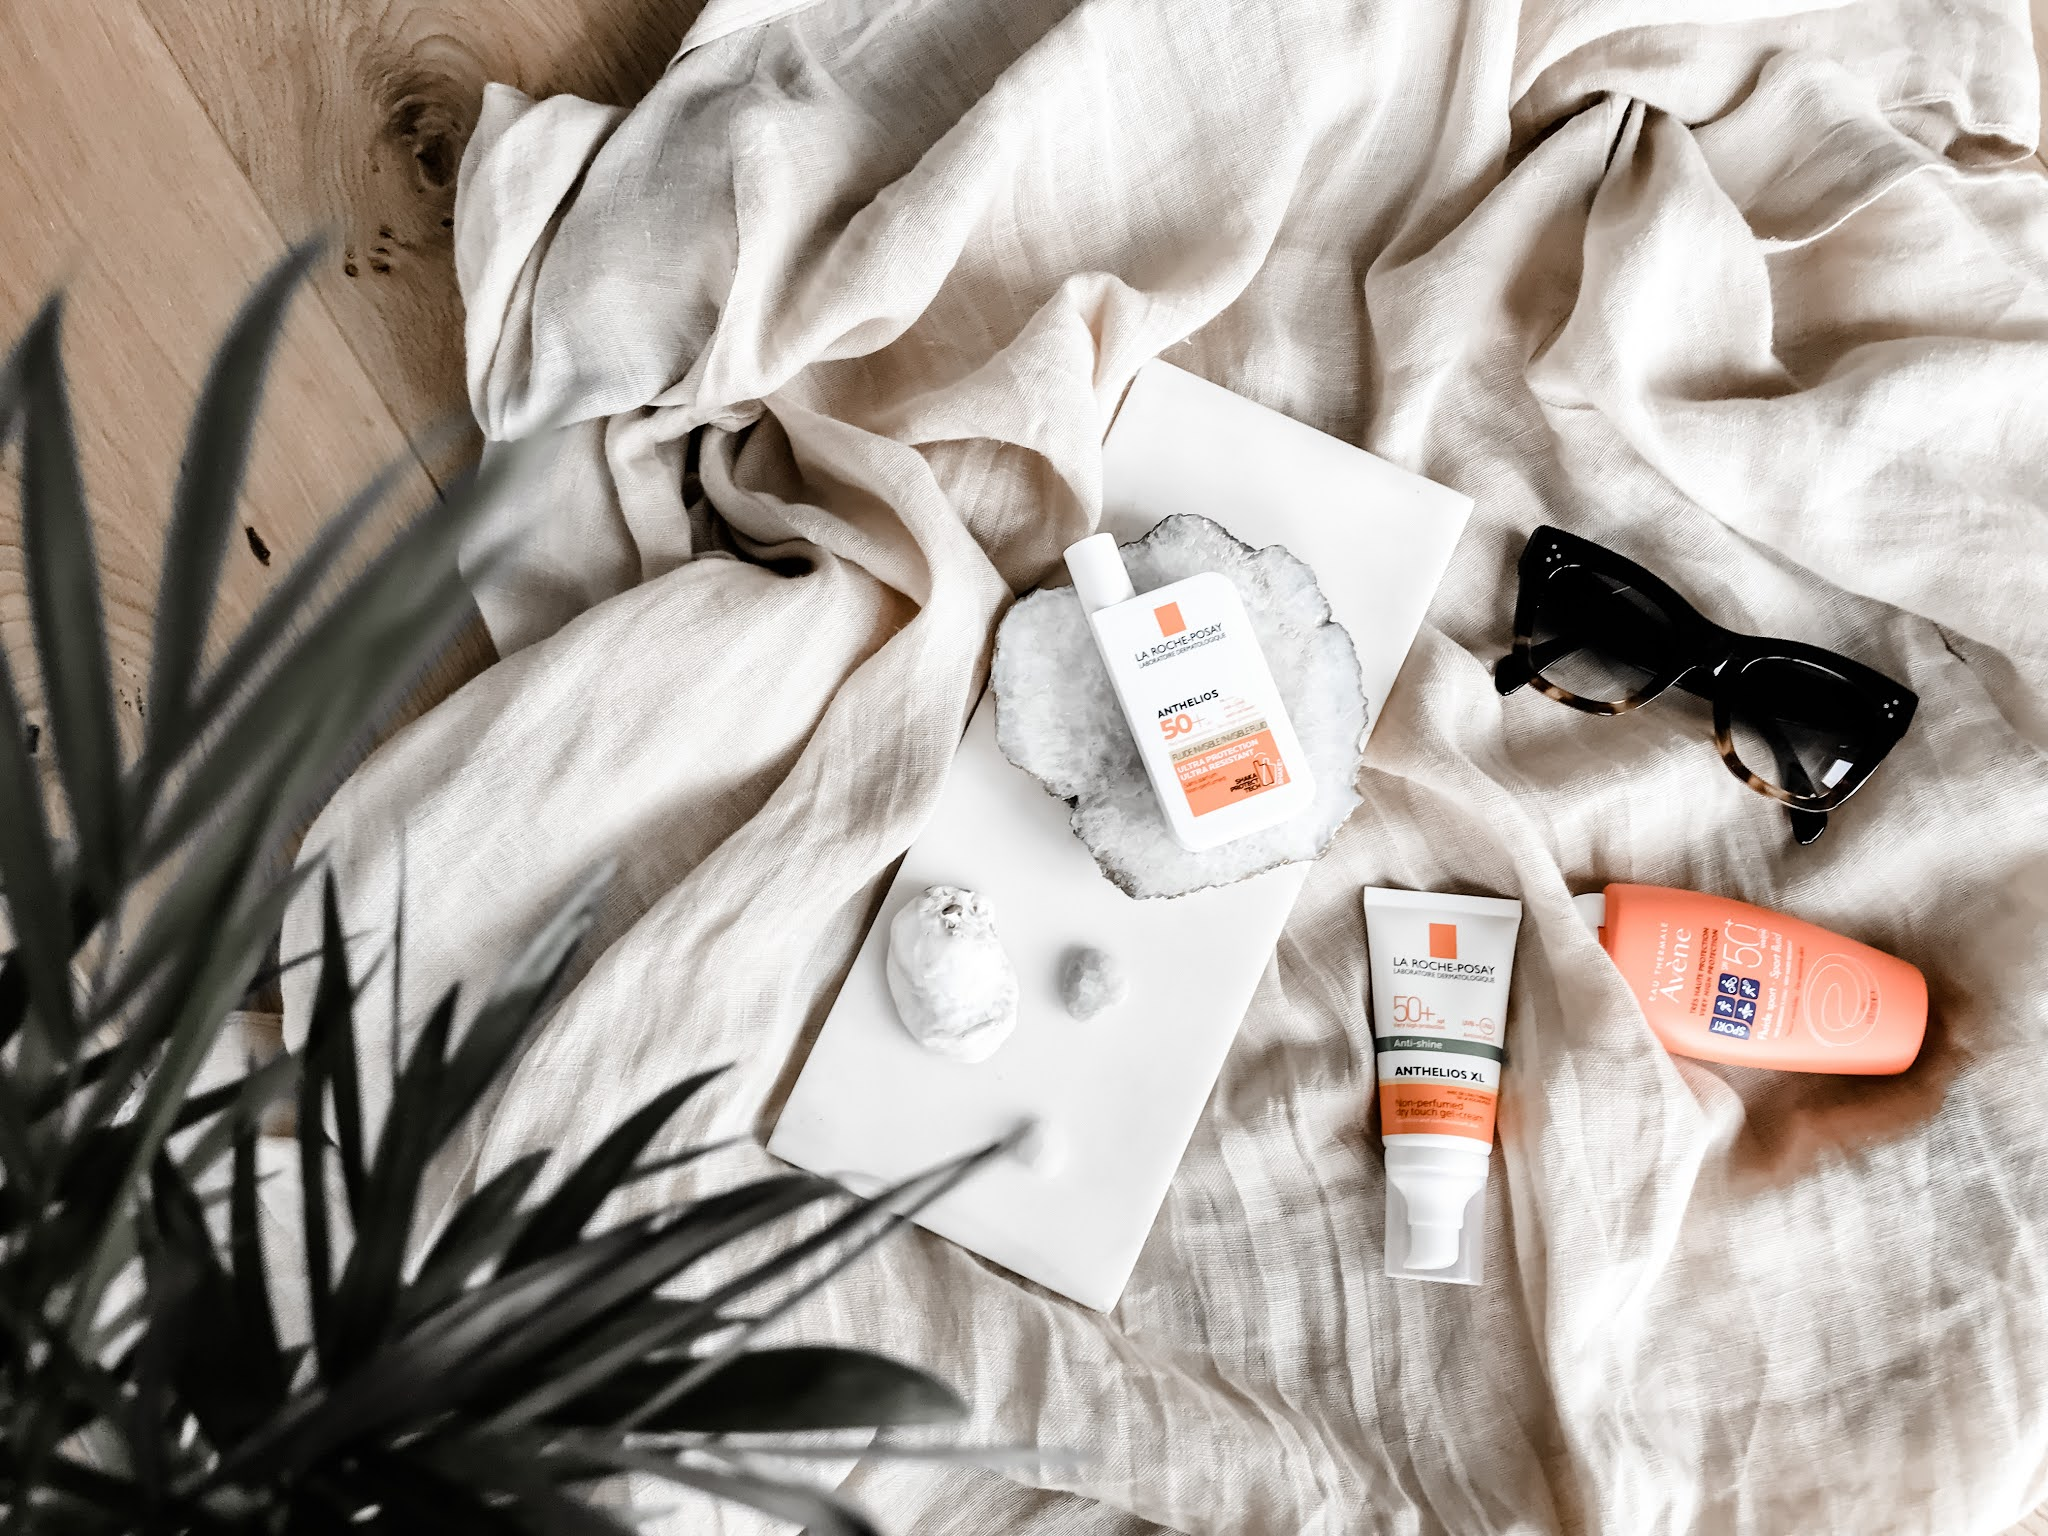 Flatlay with Sunscreen by Avene and La Roche Posay